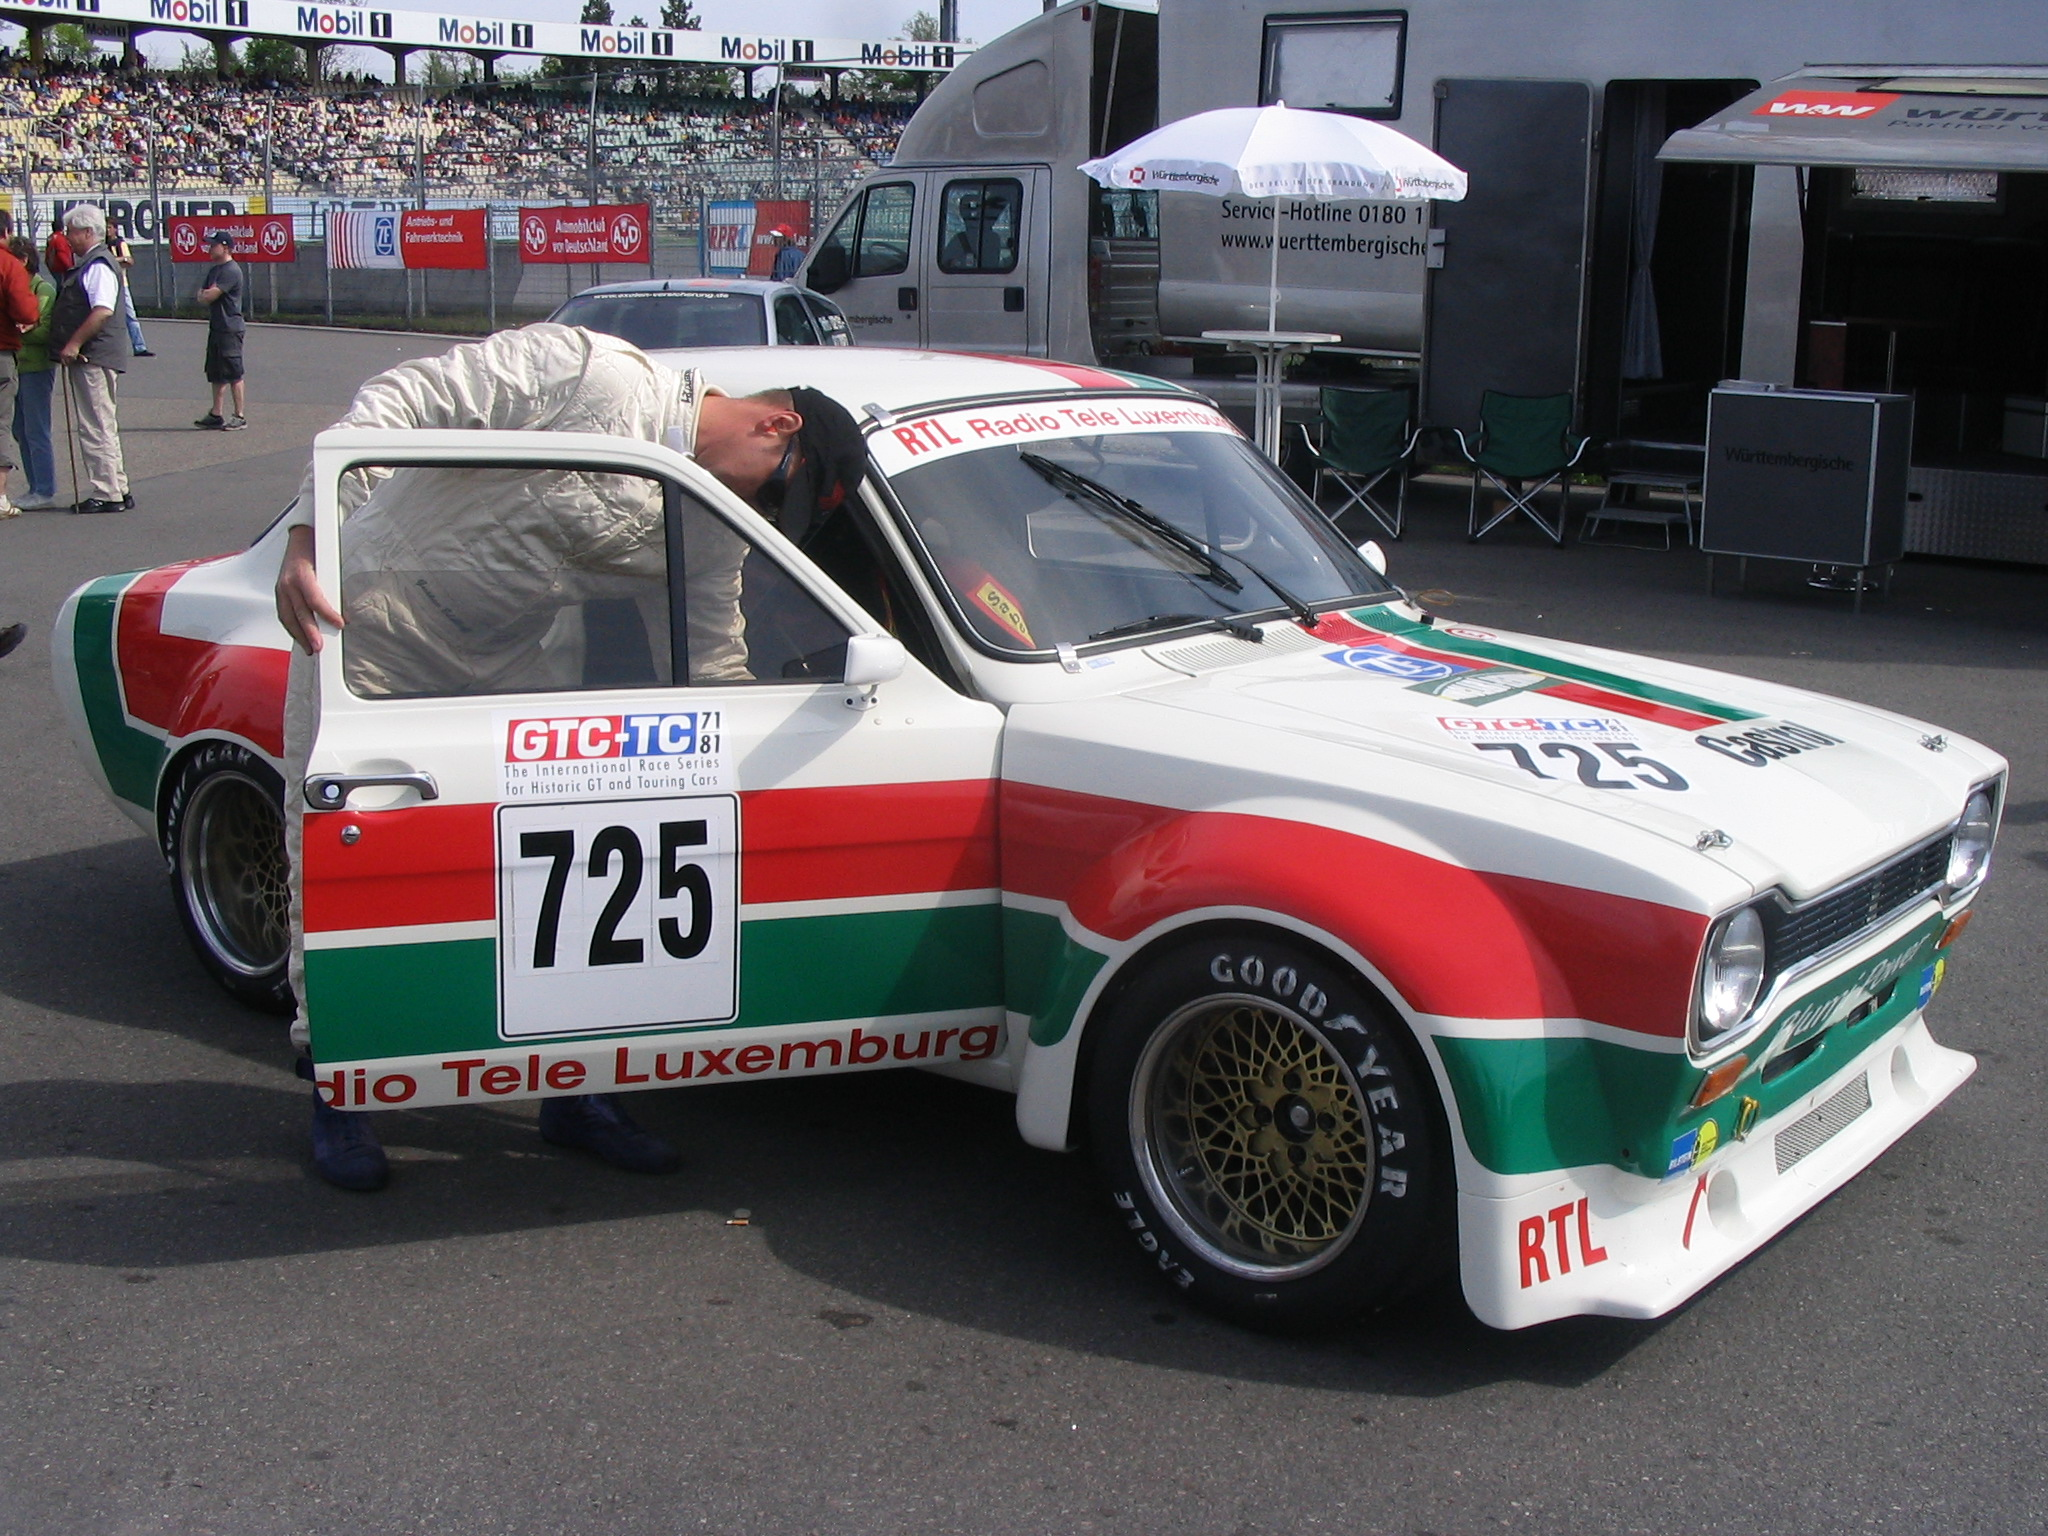 http://upload.wikimedia.org/wikipedia/commons/c/cb/Ford_Escort_RS_1600.jpg